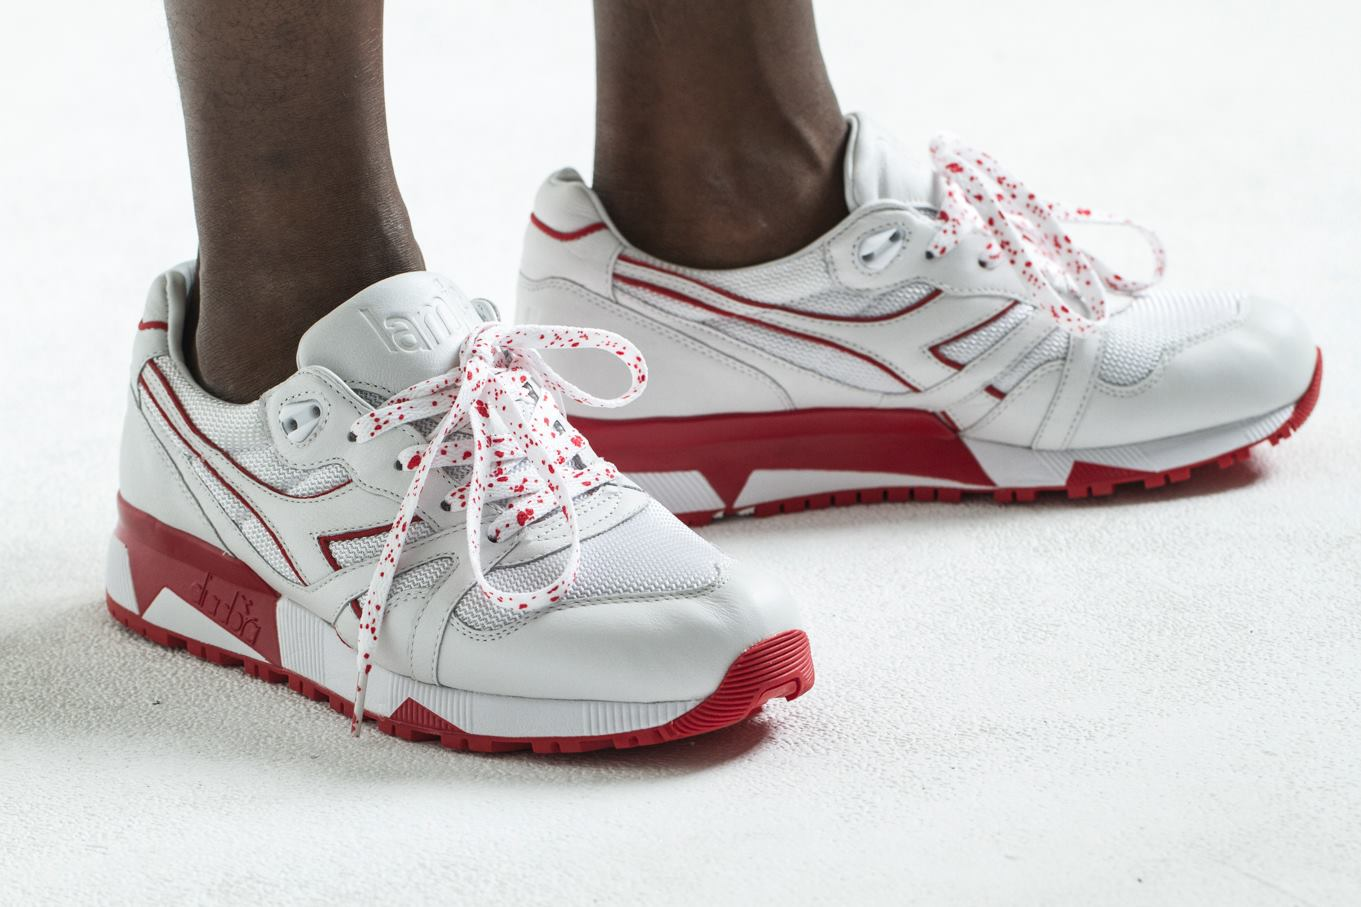 La-MJC-x-Diadora-N9000-All-Gone-2009-1